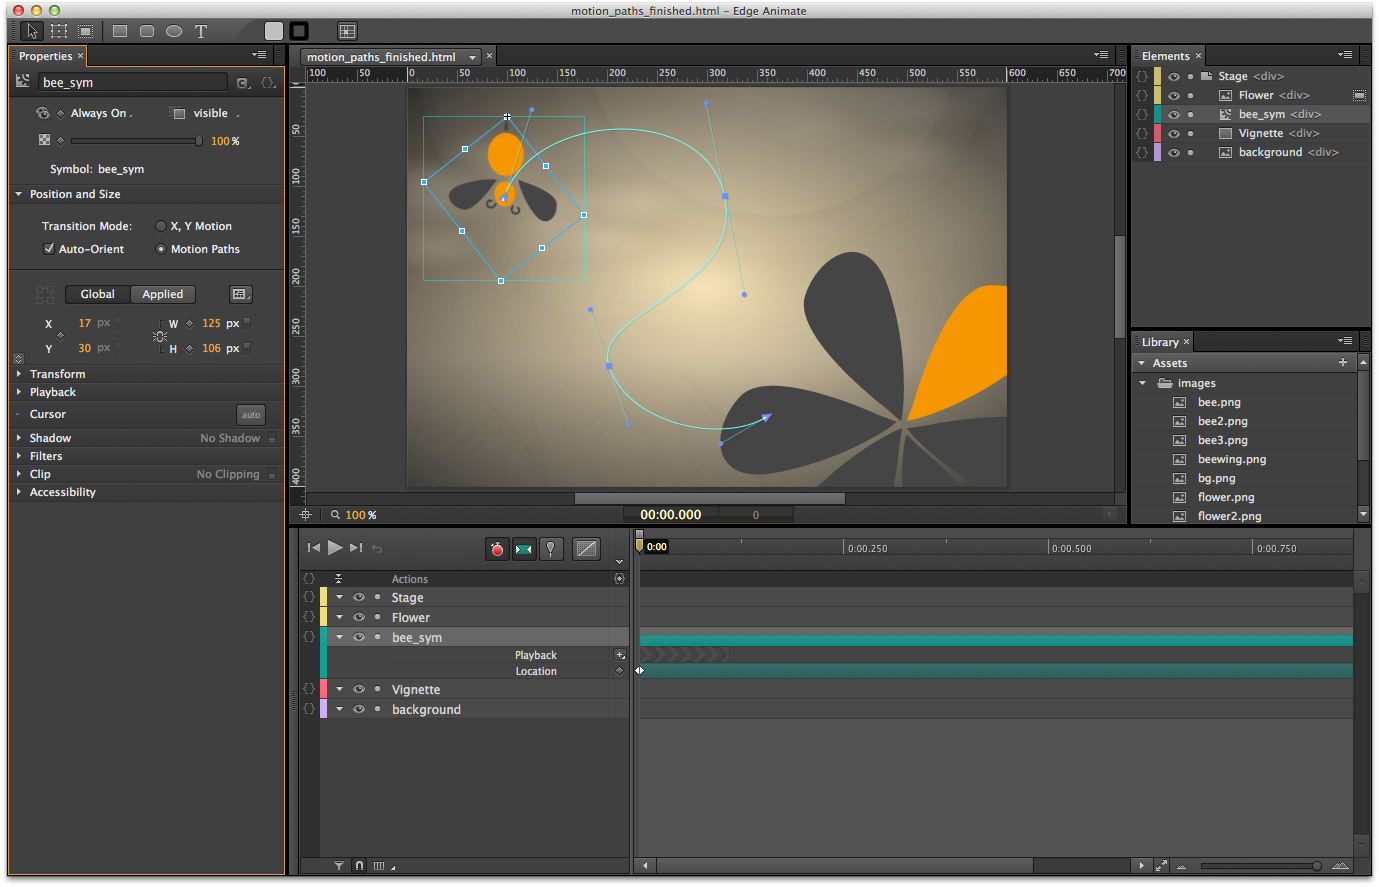 Adobe Updates Edge Animate HTML Animation Tool With Motion Paths